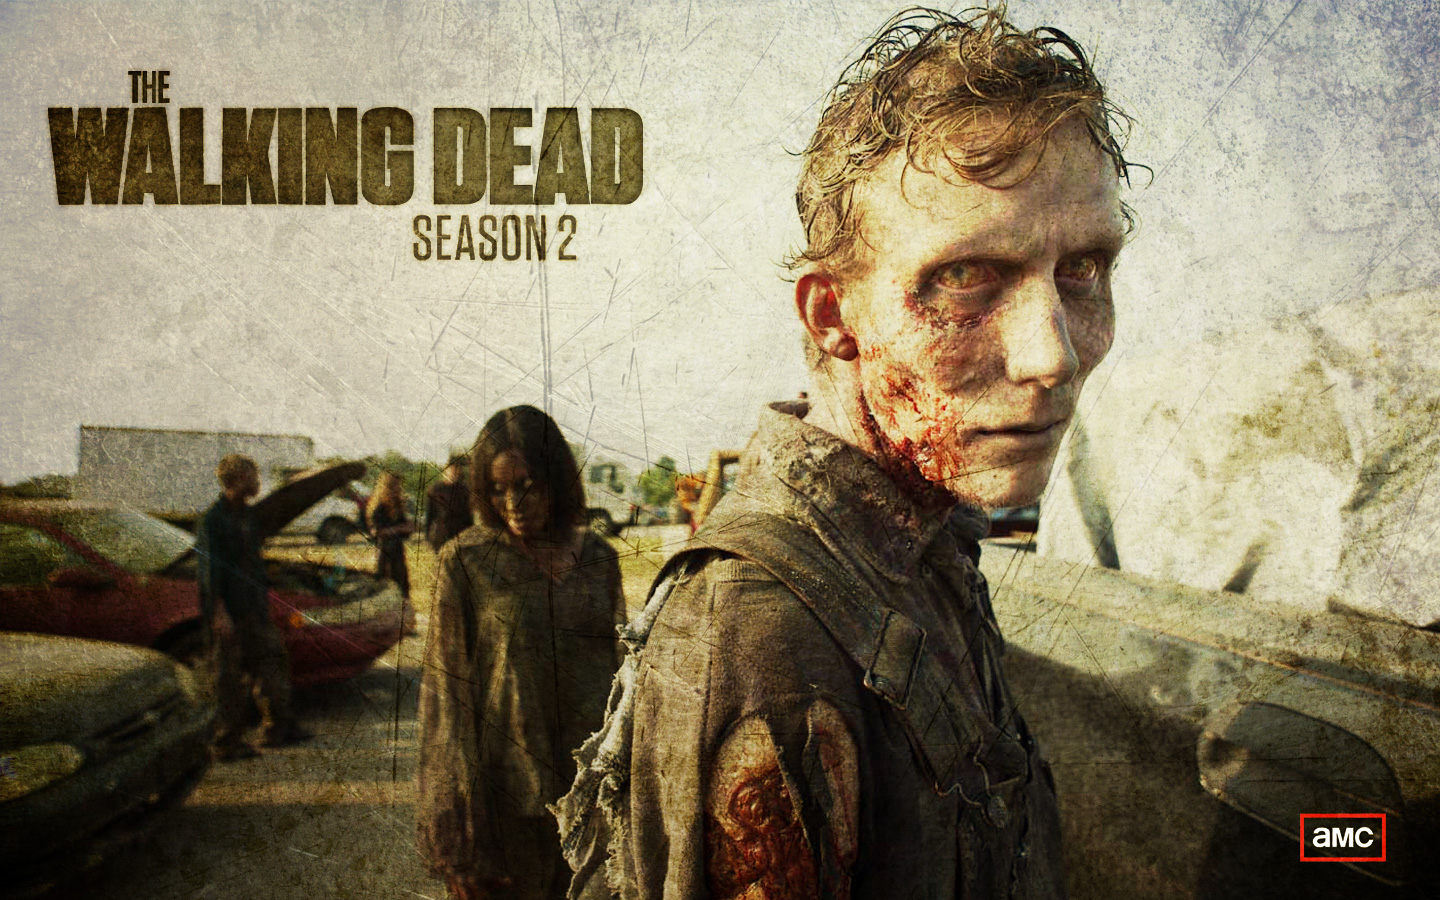 Walking Dead Season 2 Wallpaper